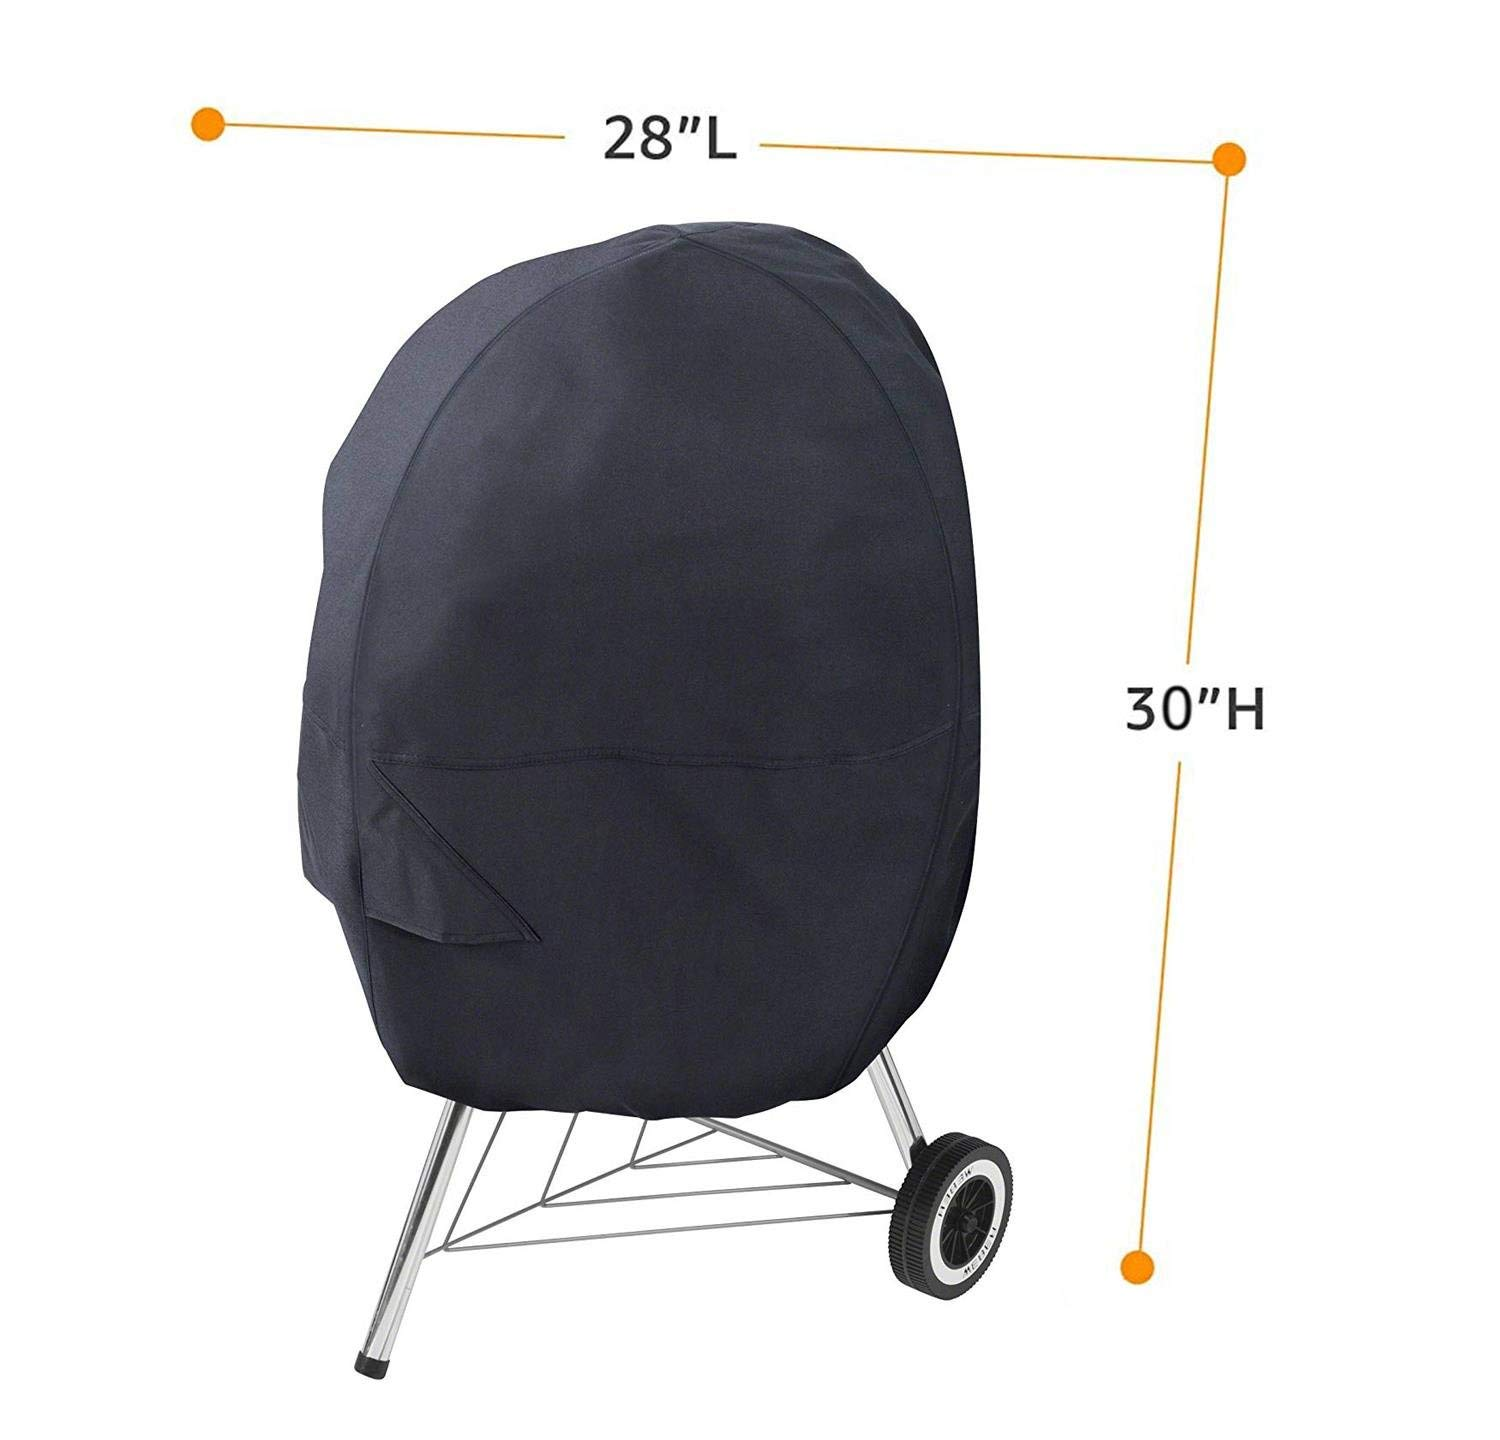 QueenA Upgraded BBQ Grill Cover, 30-Inch Waterproof Barbecue Grill Cover 210D Oxford Cloth Heavy Duty Gas Grill Covers Shade for Charcoal Grill(Black)